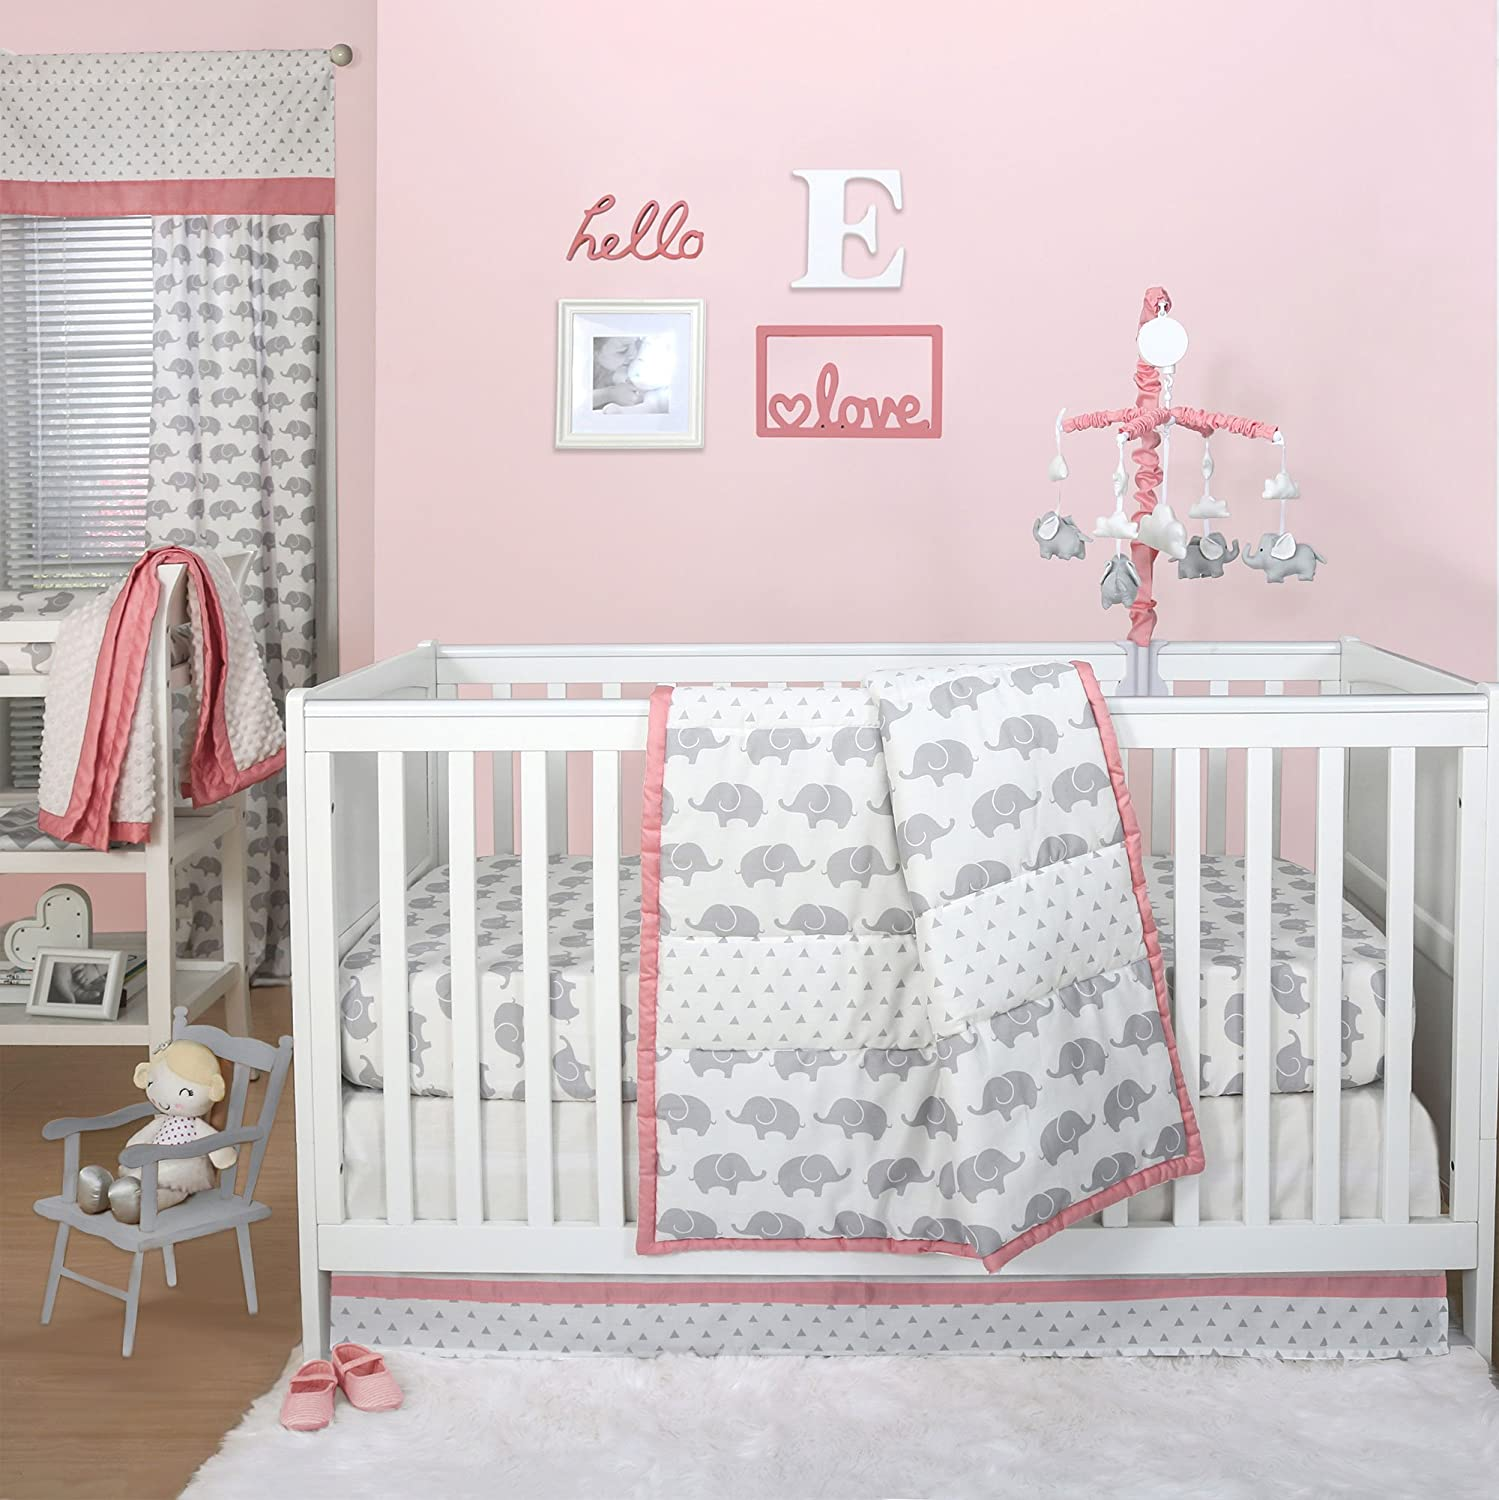 Grey Elephant and Triangle Dot 4 Piece Baby Crib Bedding Set with Coral Pink by The Peanut Shell   B01HQR8TZM